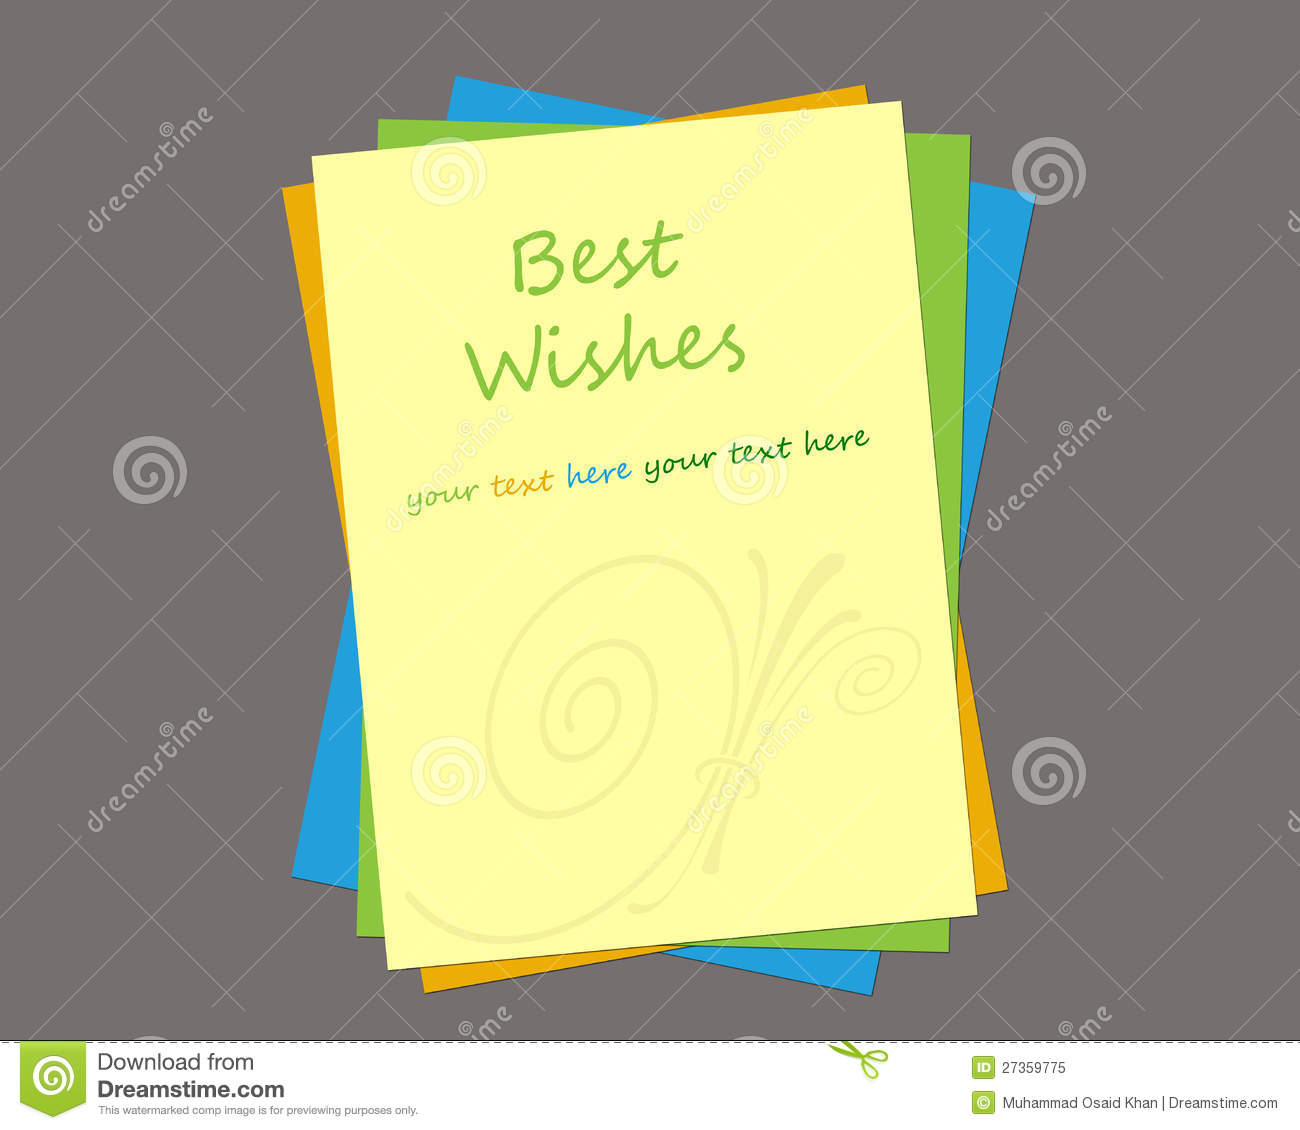 try psprints free downloadable greeting card layout guidelines now